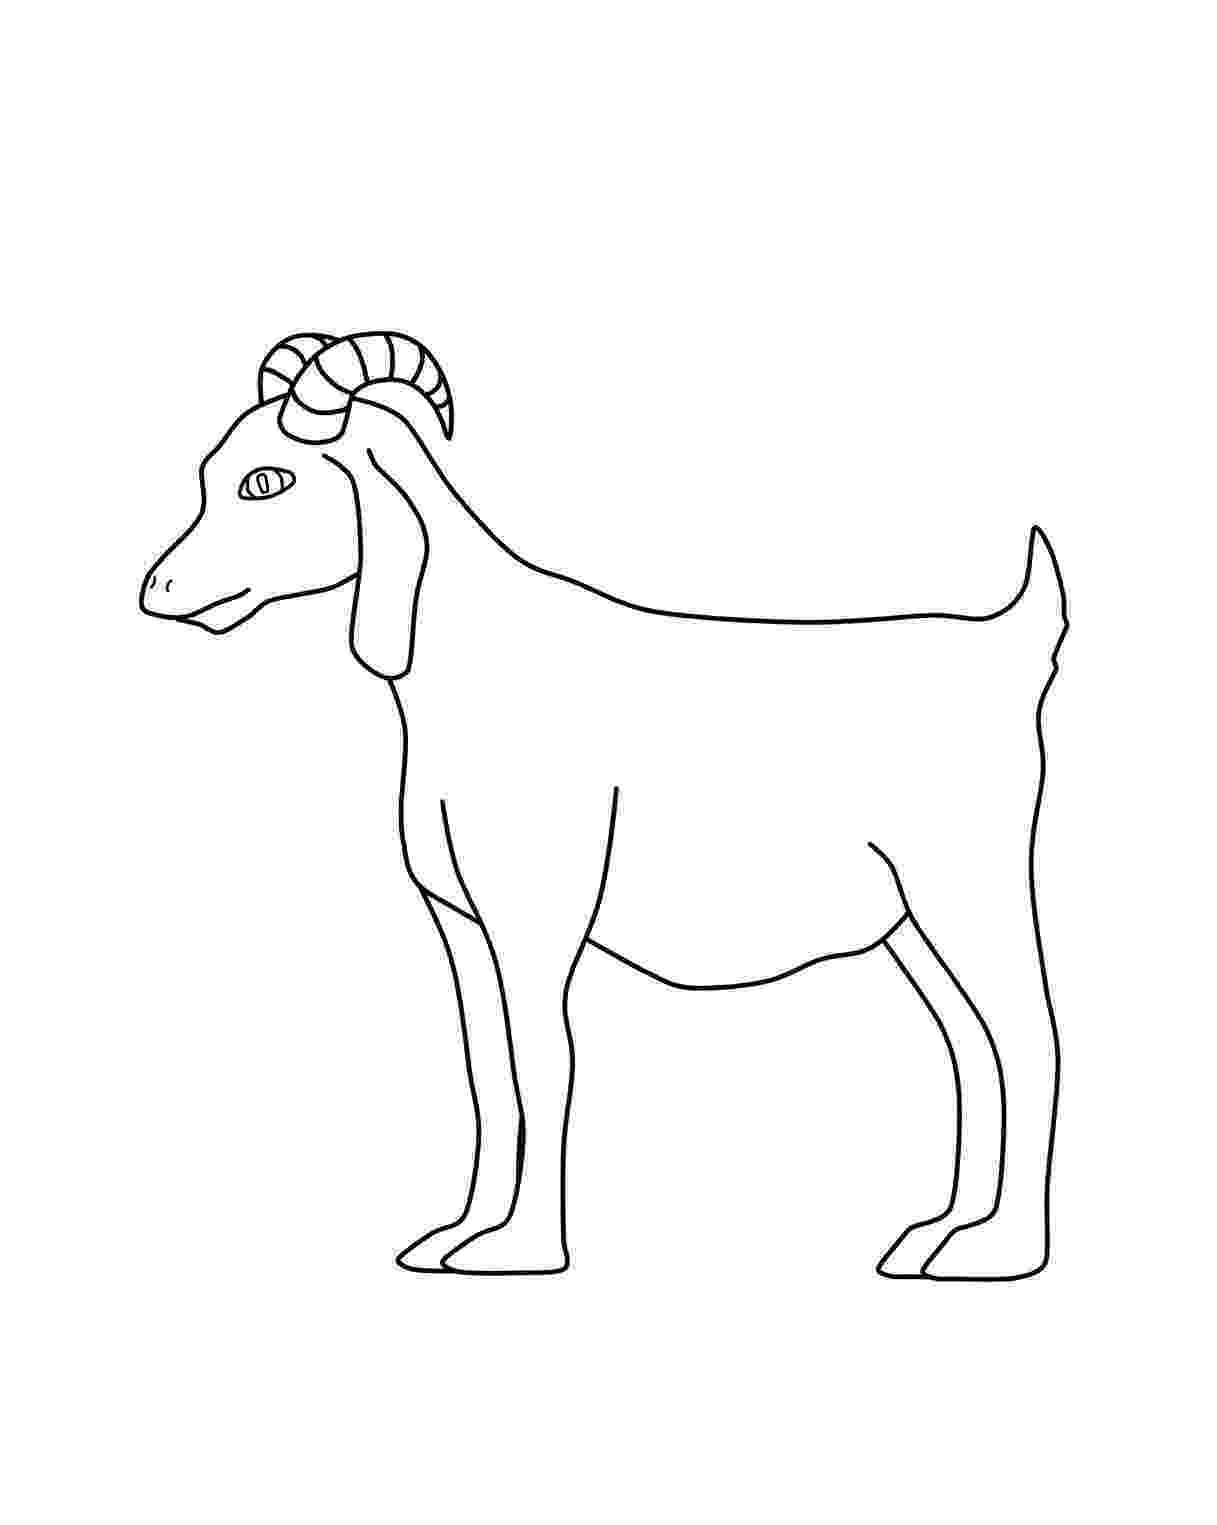 goat pictures to color free printable goat coloring pages for kids color goat to pictures